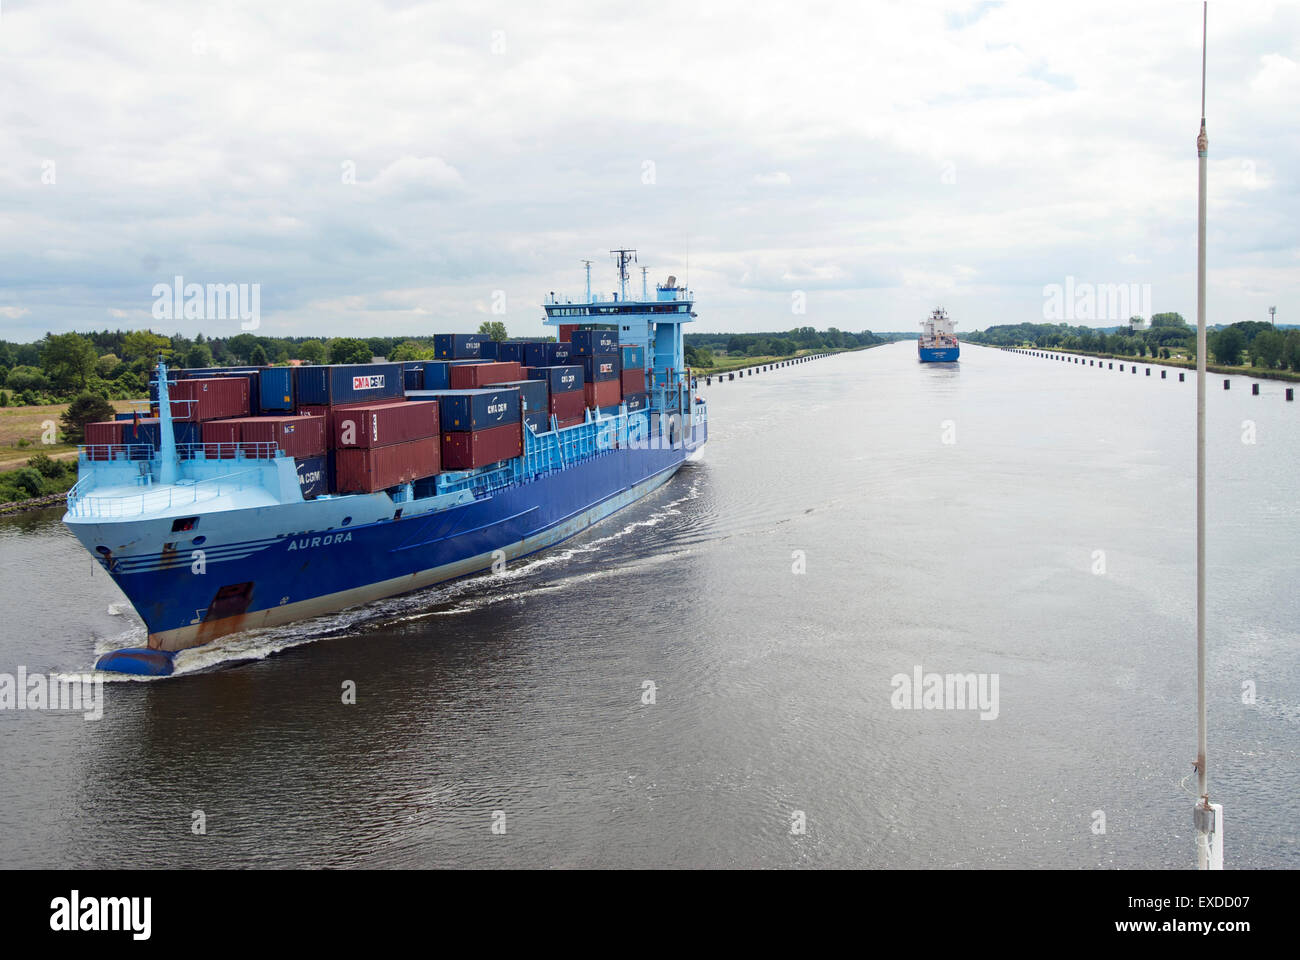 Freighter in the Kiel Canal - Stock Image